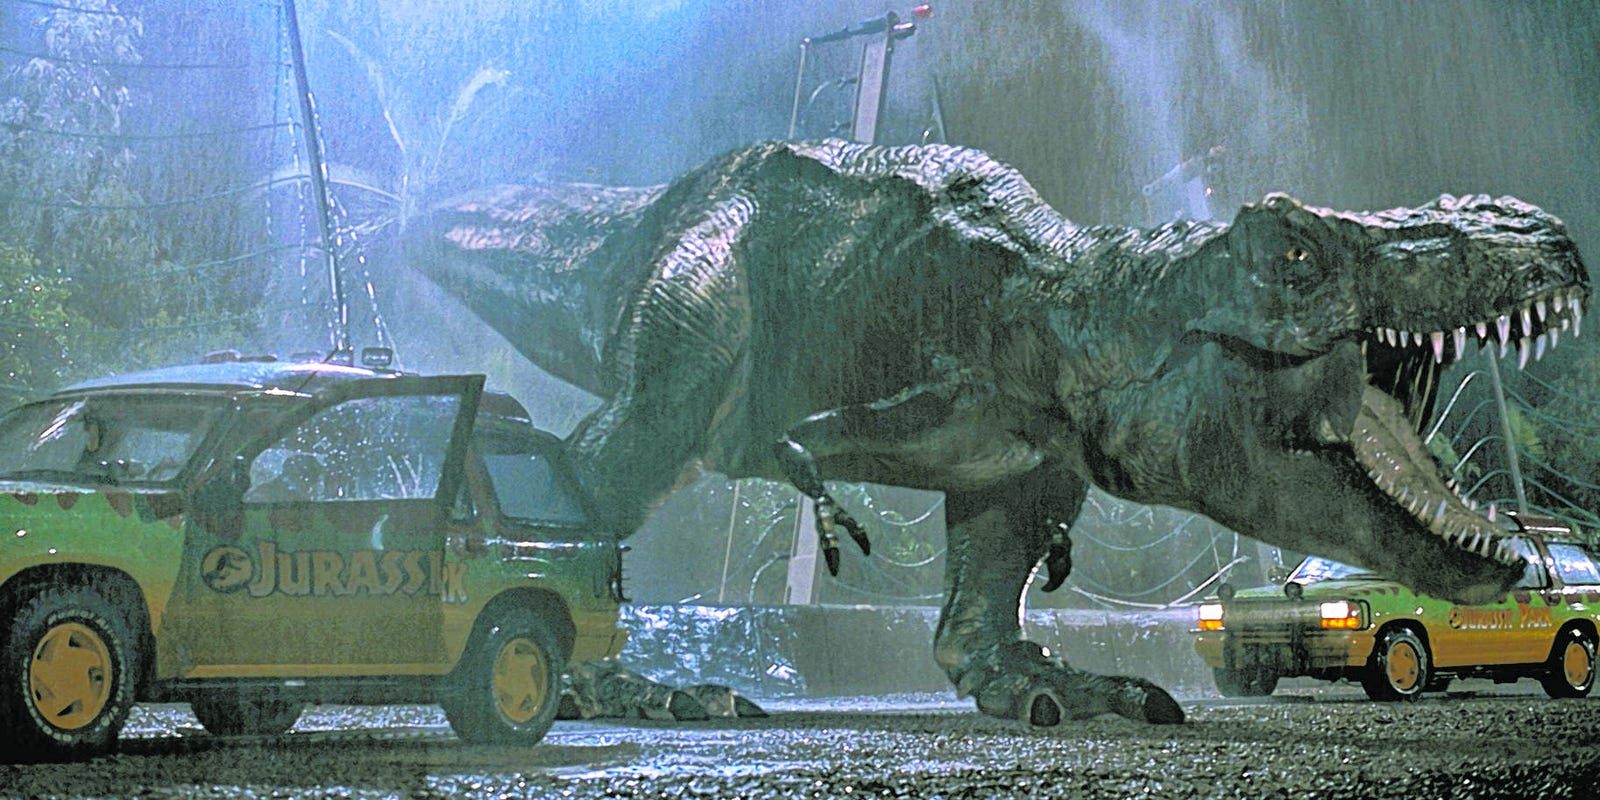 Drive-in movies at Westfield Palm Desert mall with 'Jurassic Park'